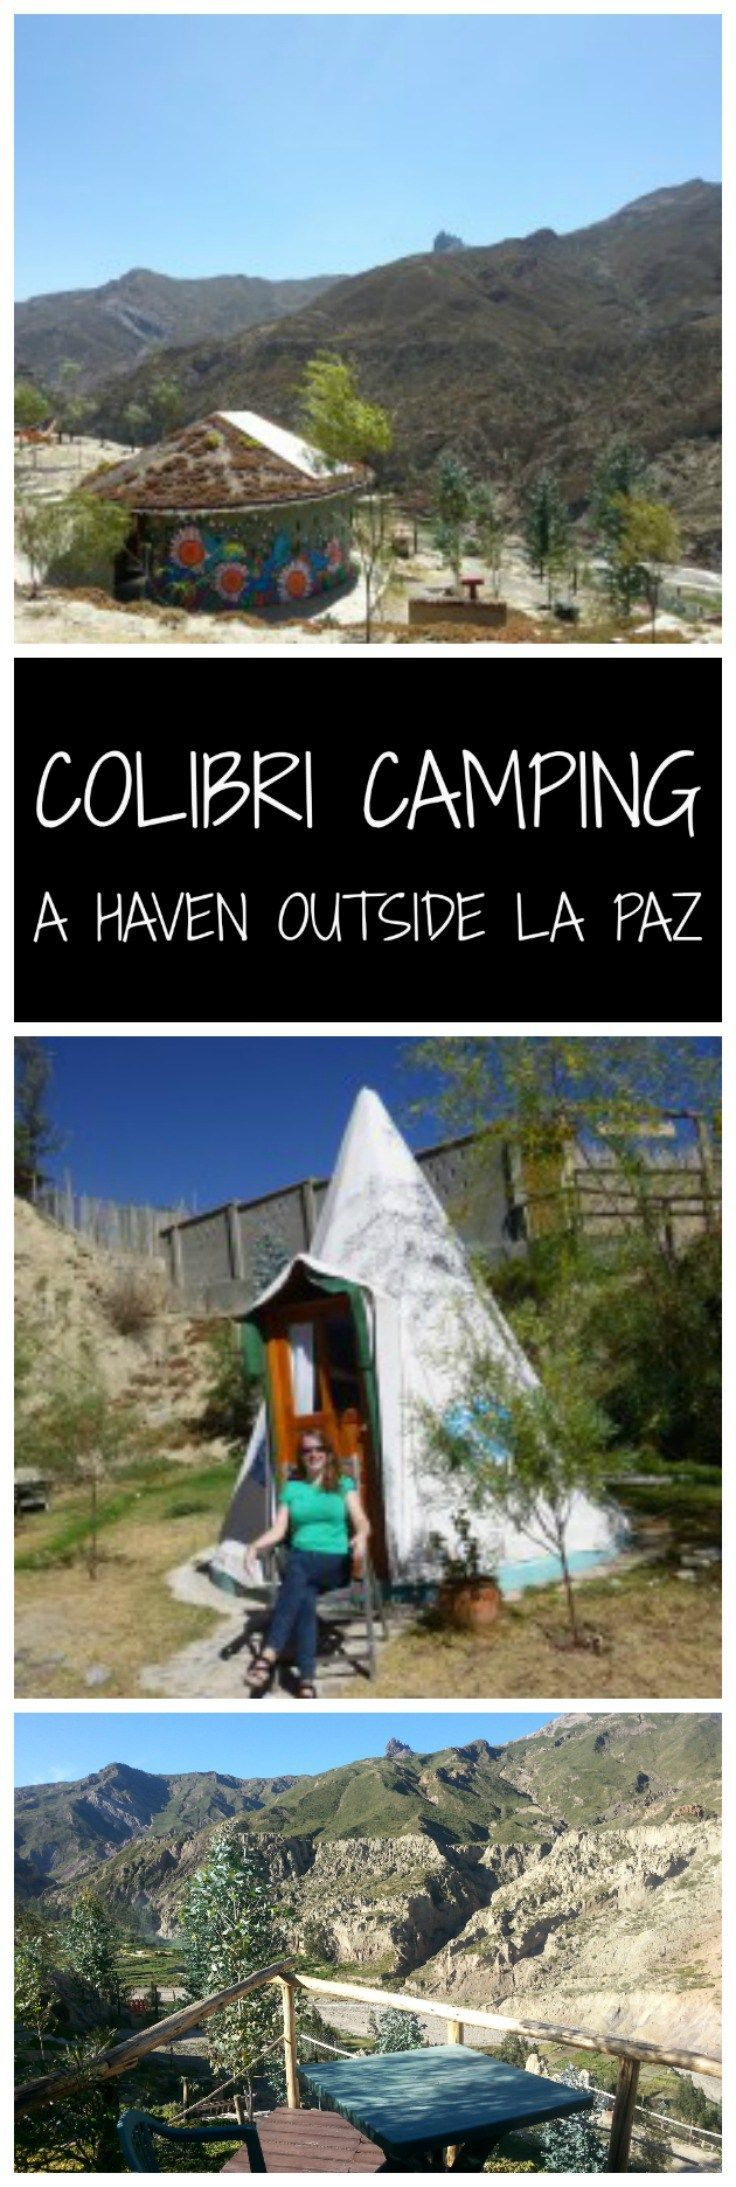 Colibri Camping - A Haven outside La Paz, Bolivia.  Forget finding a hostel or a hotel in La Paz - you have to stay at this fabulous eco-friendly glamping site just outside the city!